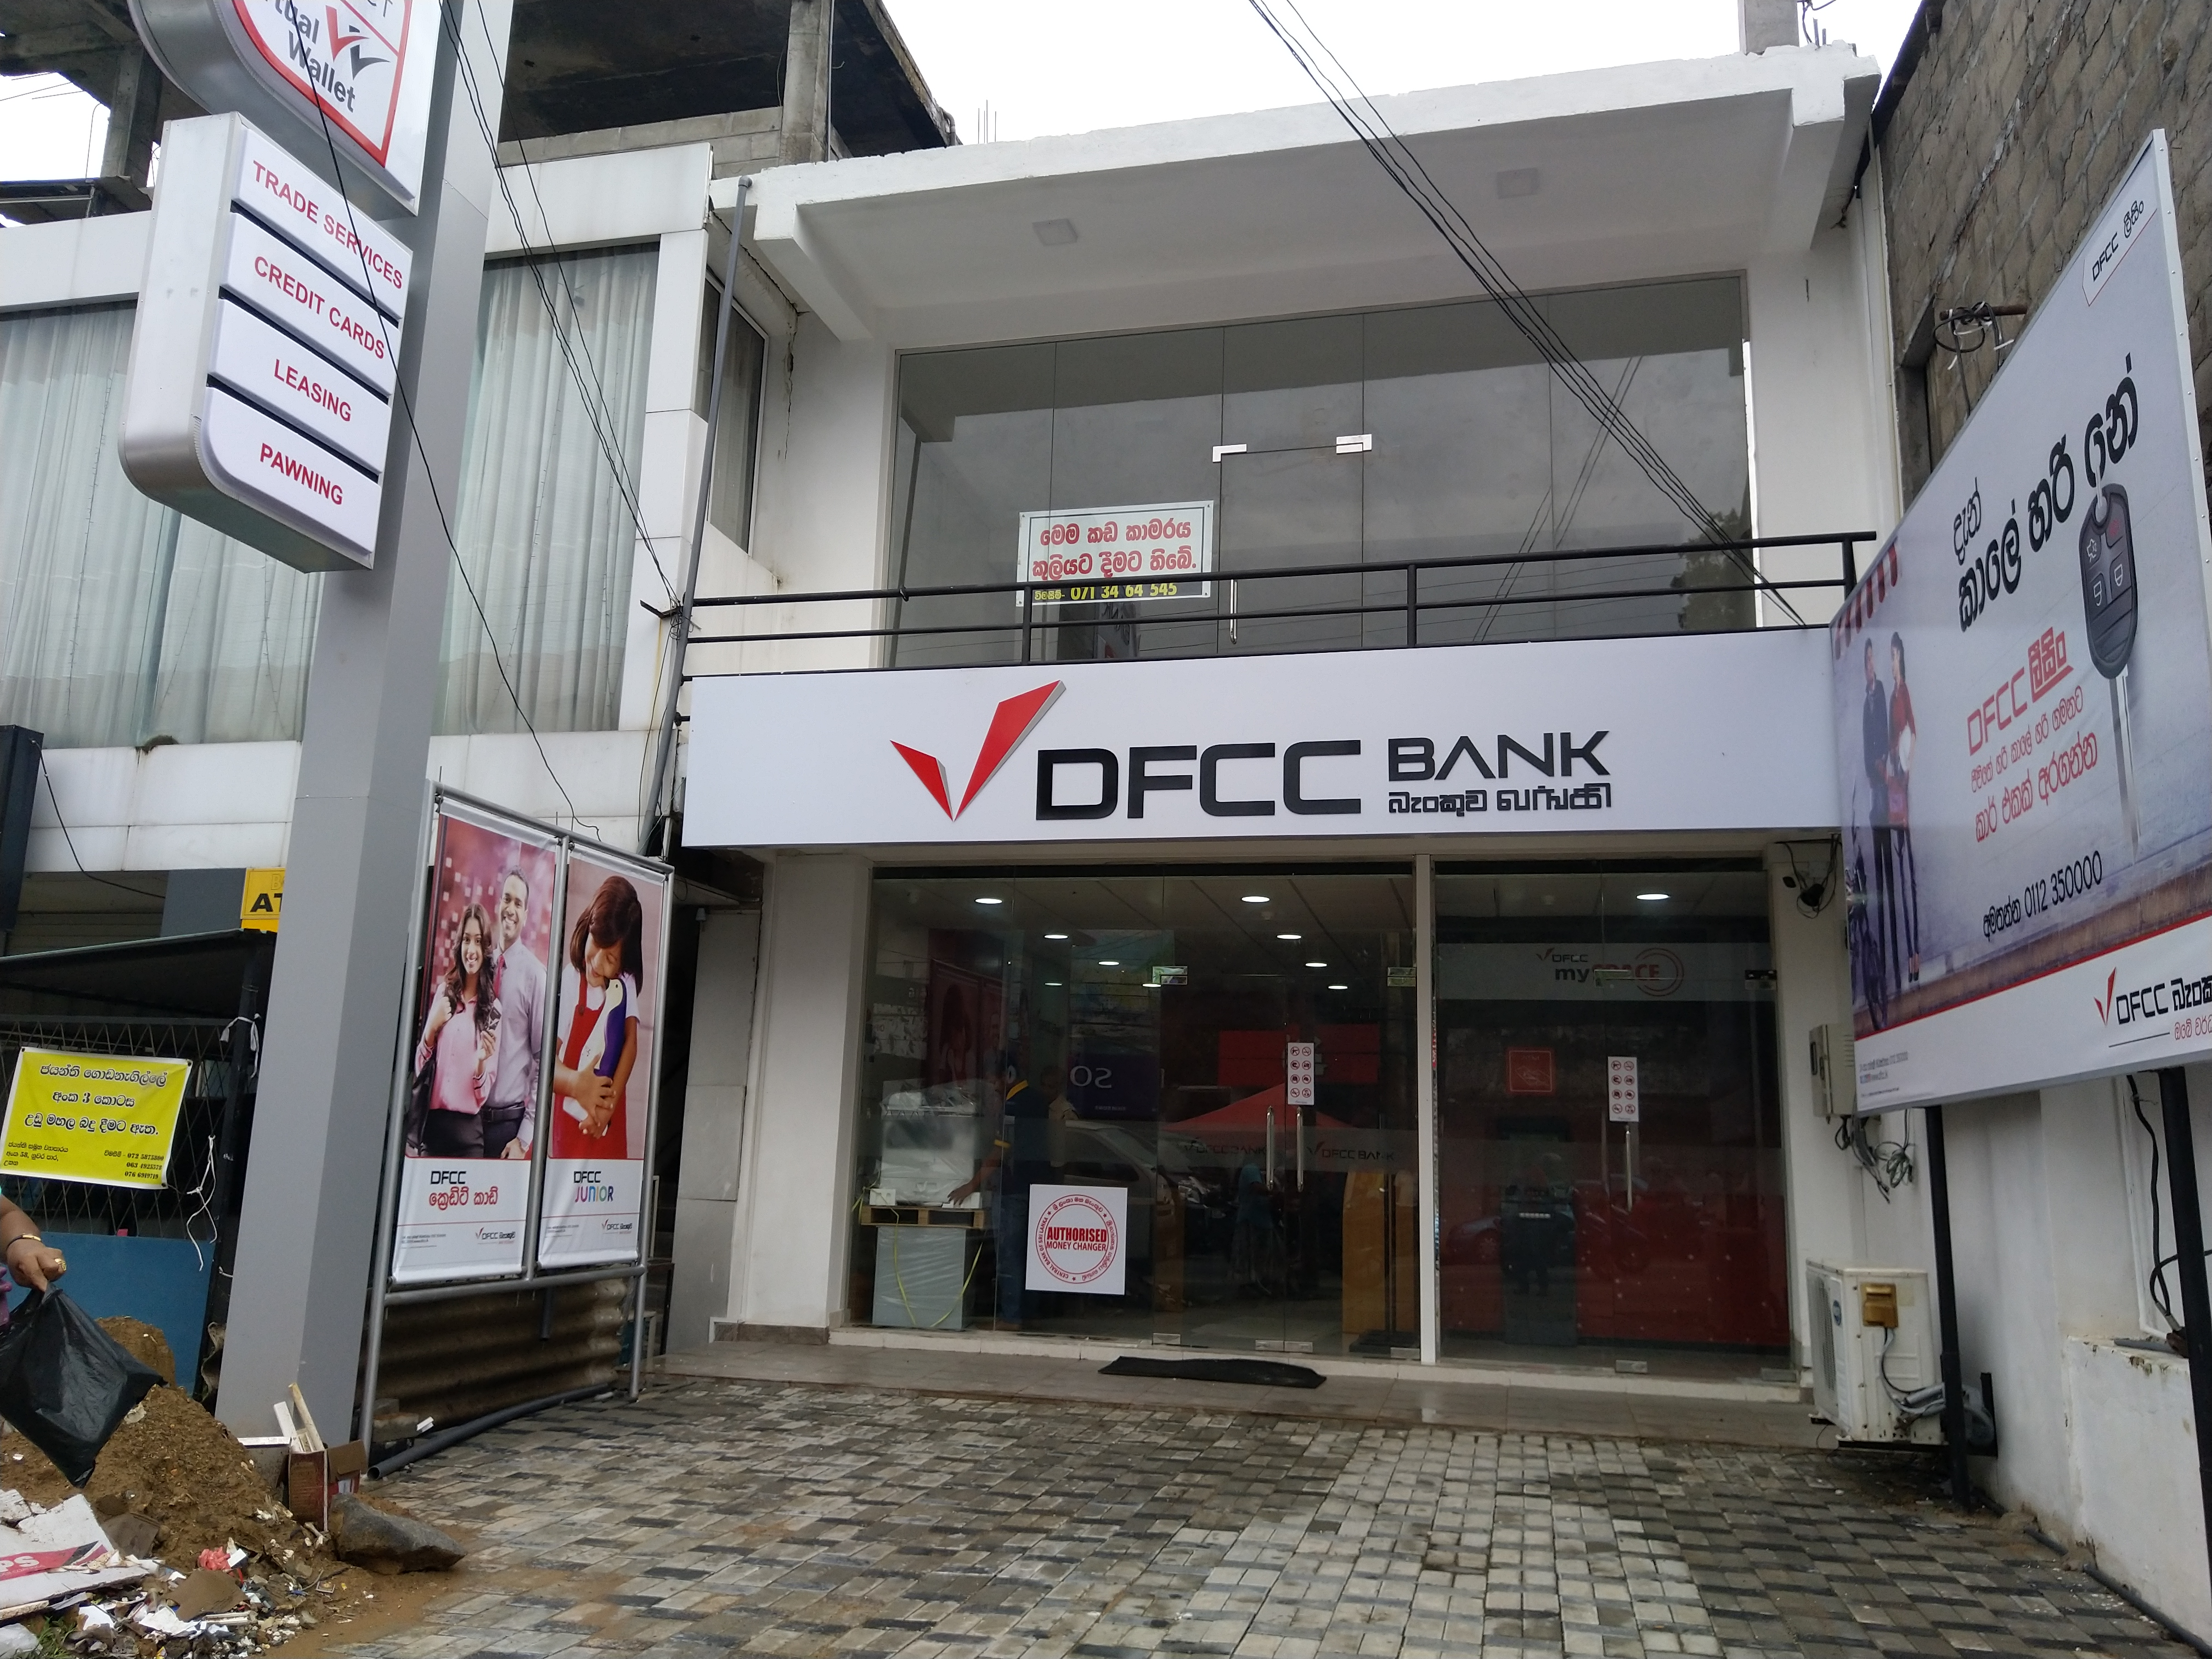 DFCC Bank opens 20 branches across Sri Lanka within 30 Days 2